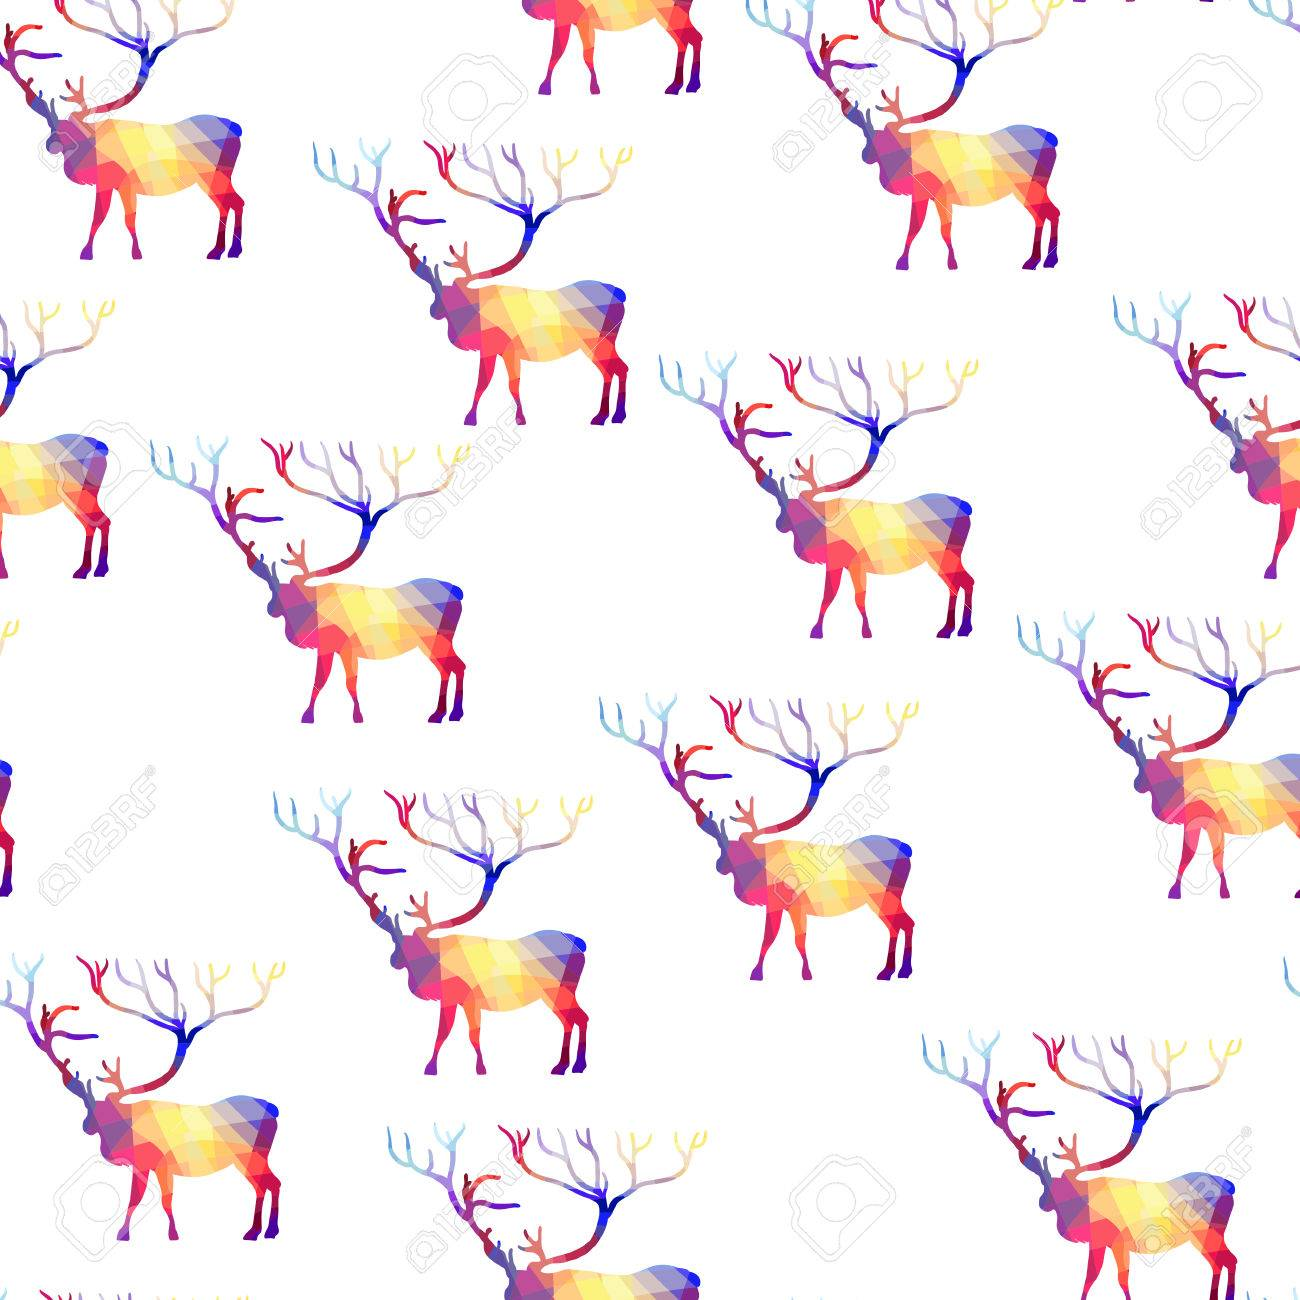 Seamless background with geometric deer Stock Vector - 22188918